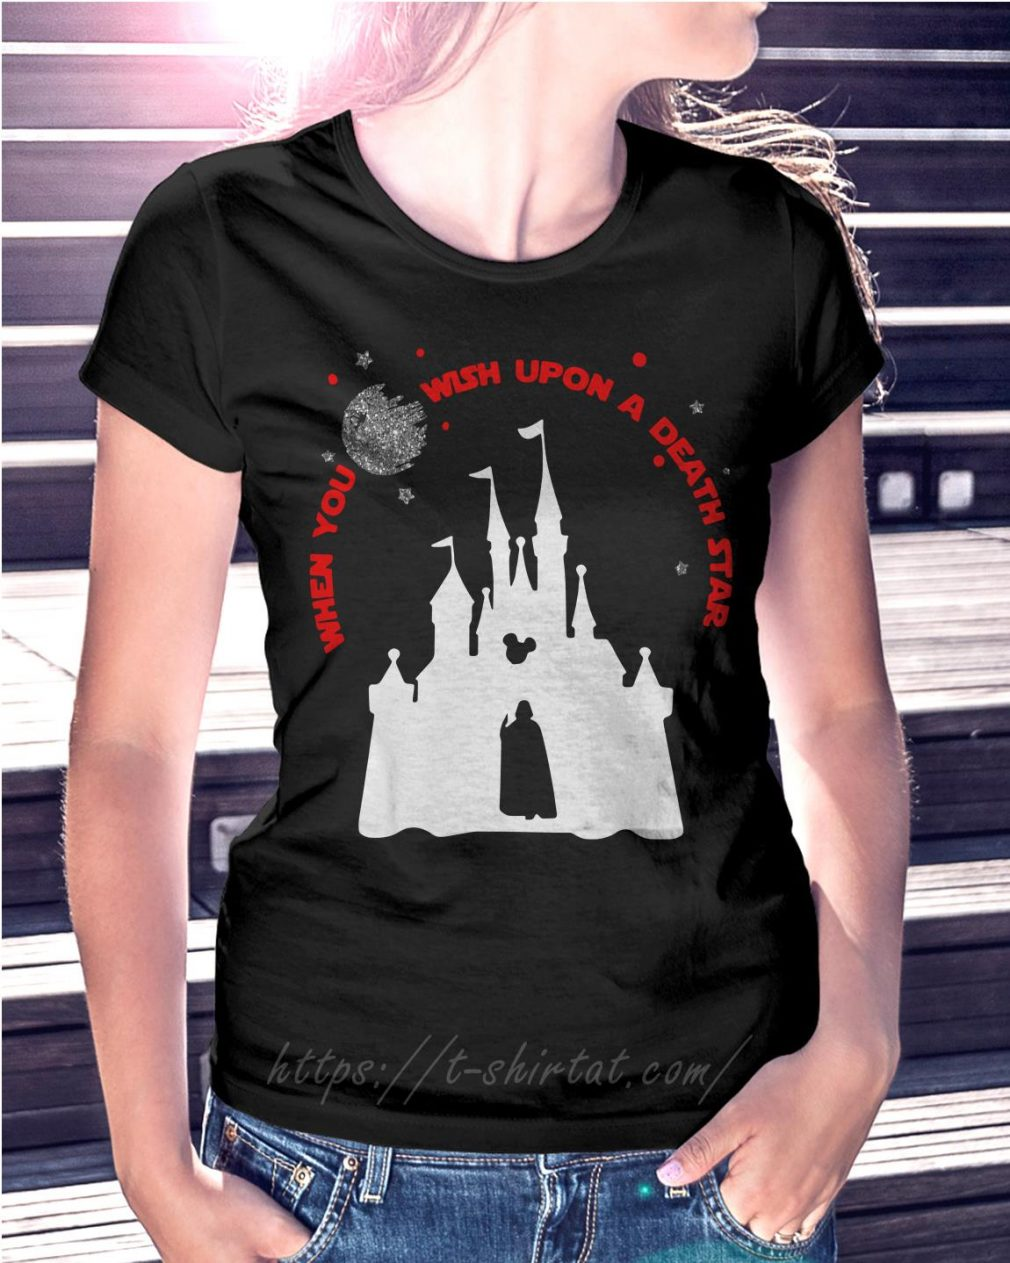 Vader Star wars and Castle Disney when you wish upon a death star